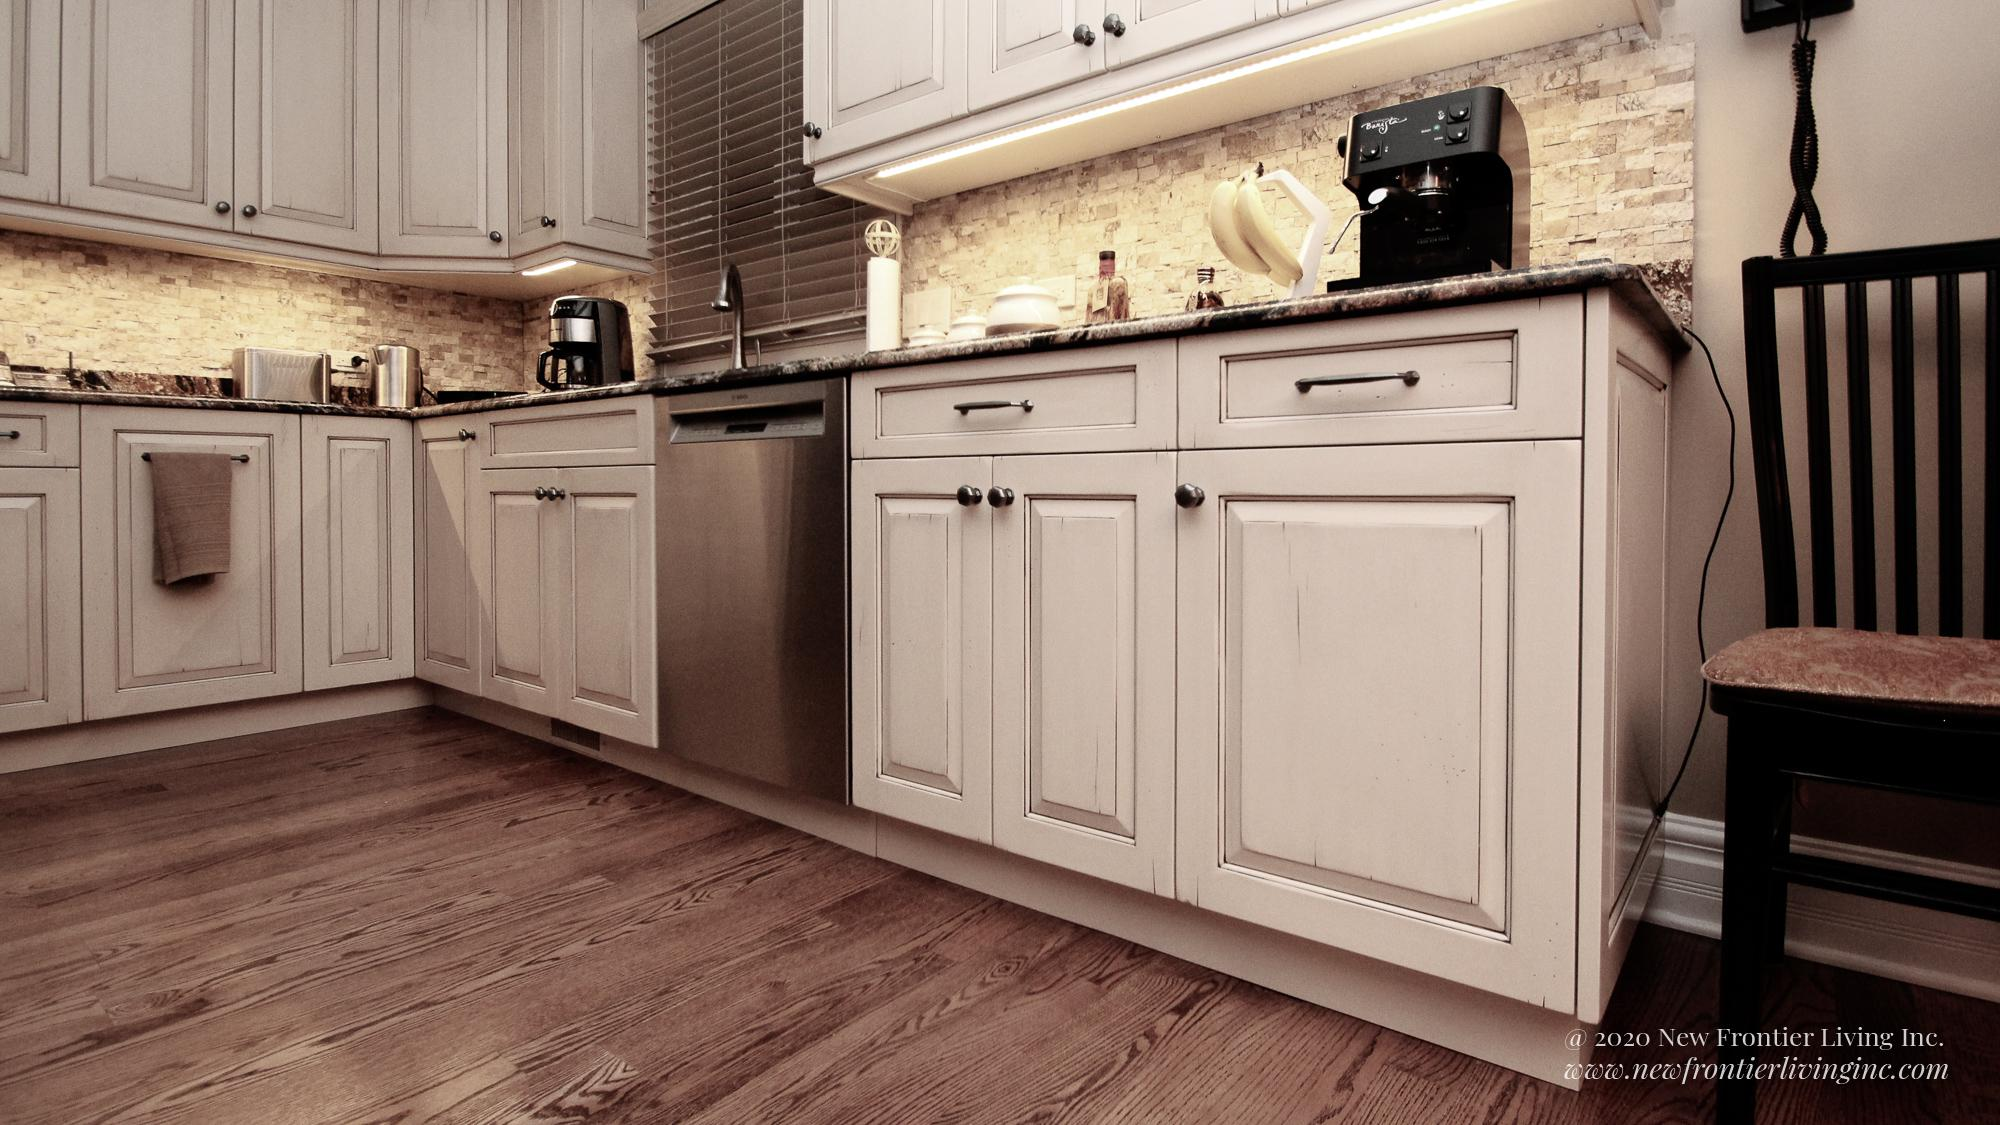 Custom light brown kitchen lower cabinets, dishwasher and small appliances on the countertop